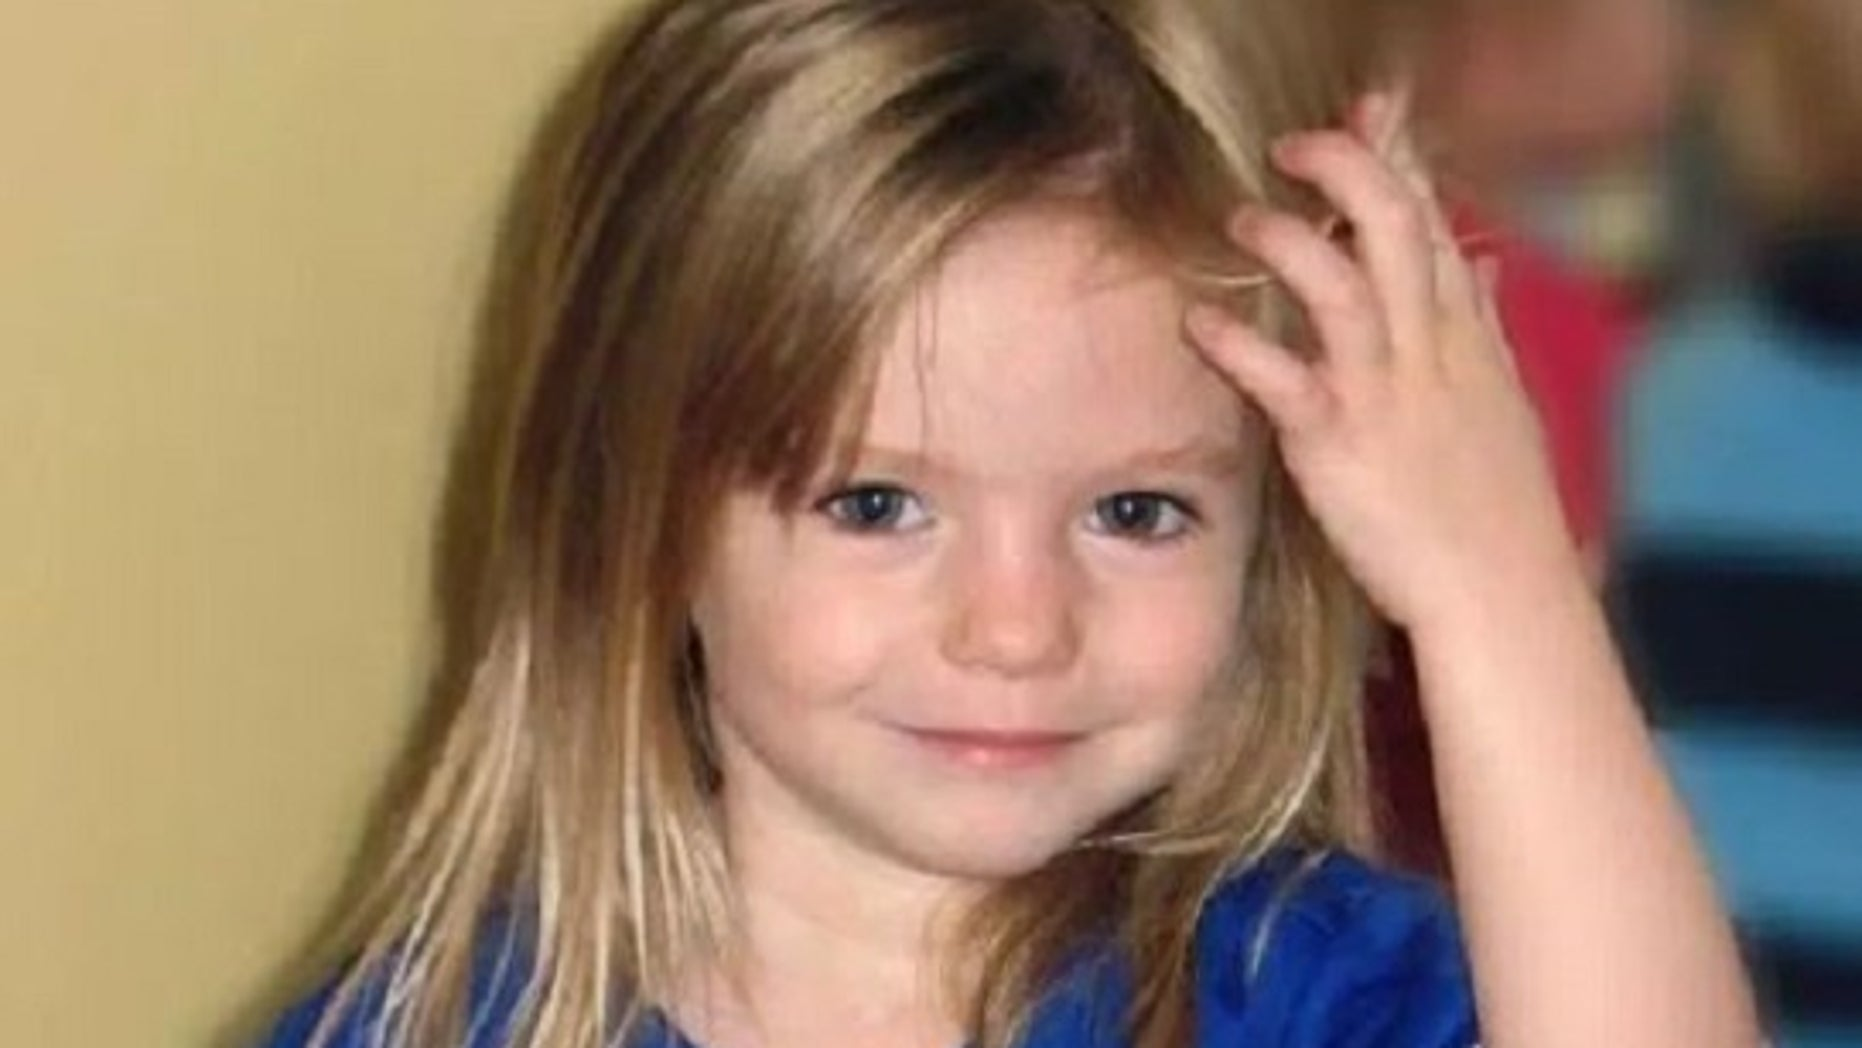 Madeleine McCann went missing in 2007 from her family's apartment in Portugal.